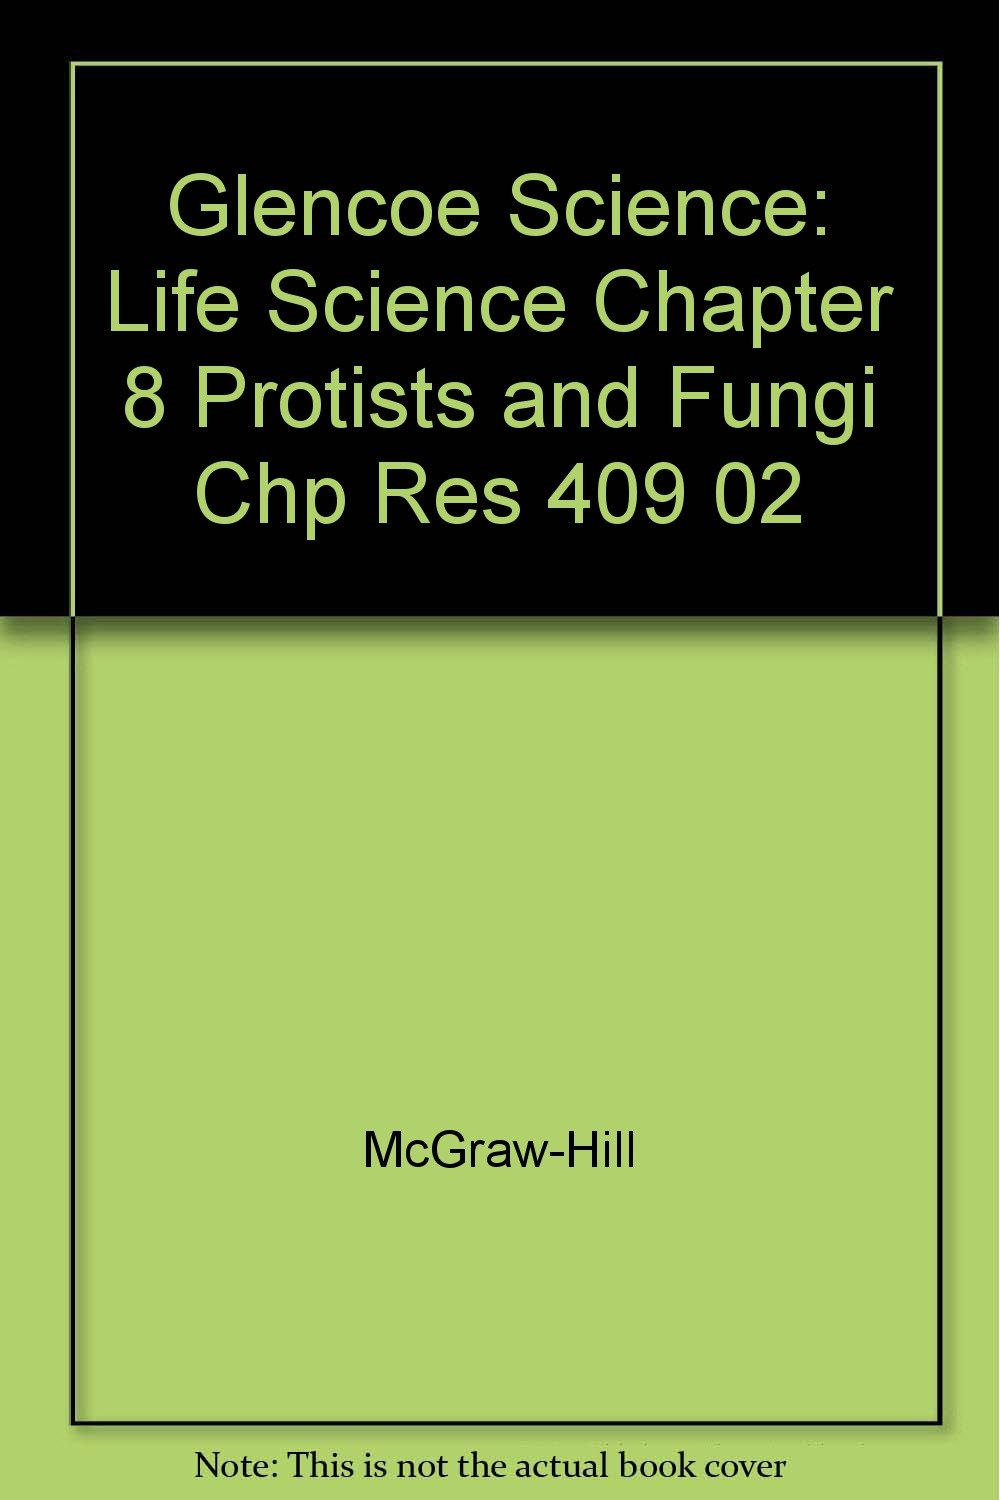 Download Glencoe Science: Life Science Chapter 8 Protists and Fungi Chp Res 409 02 ebook